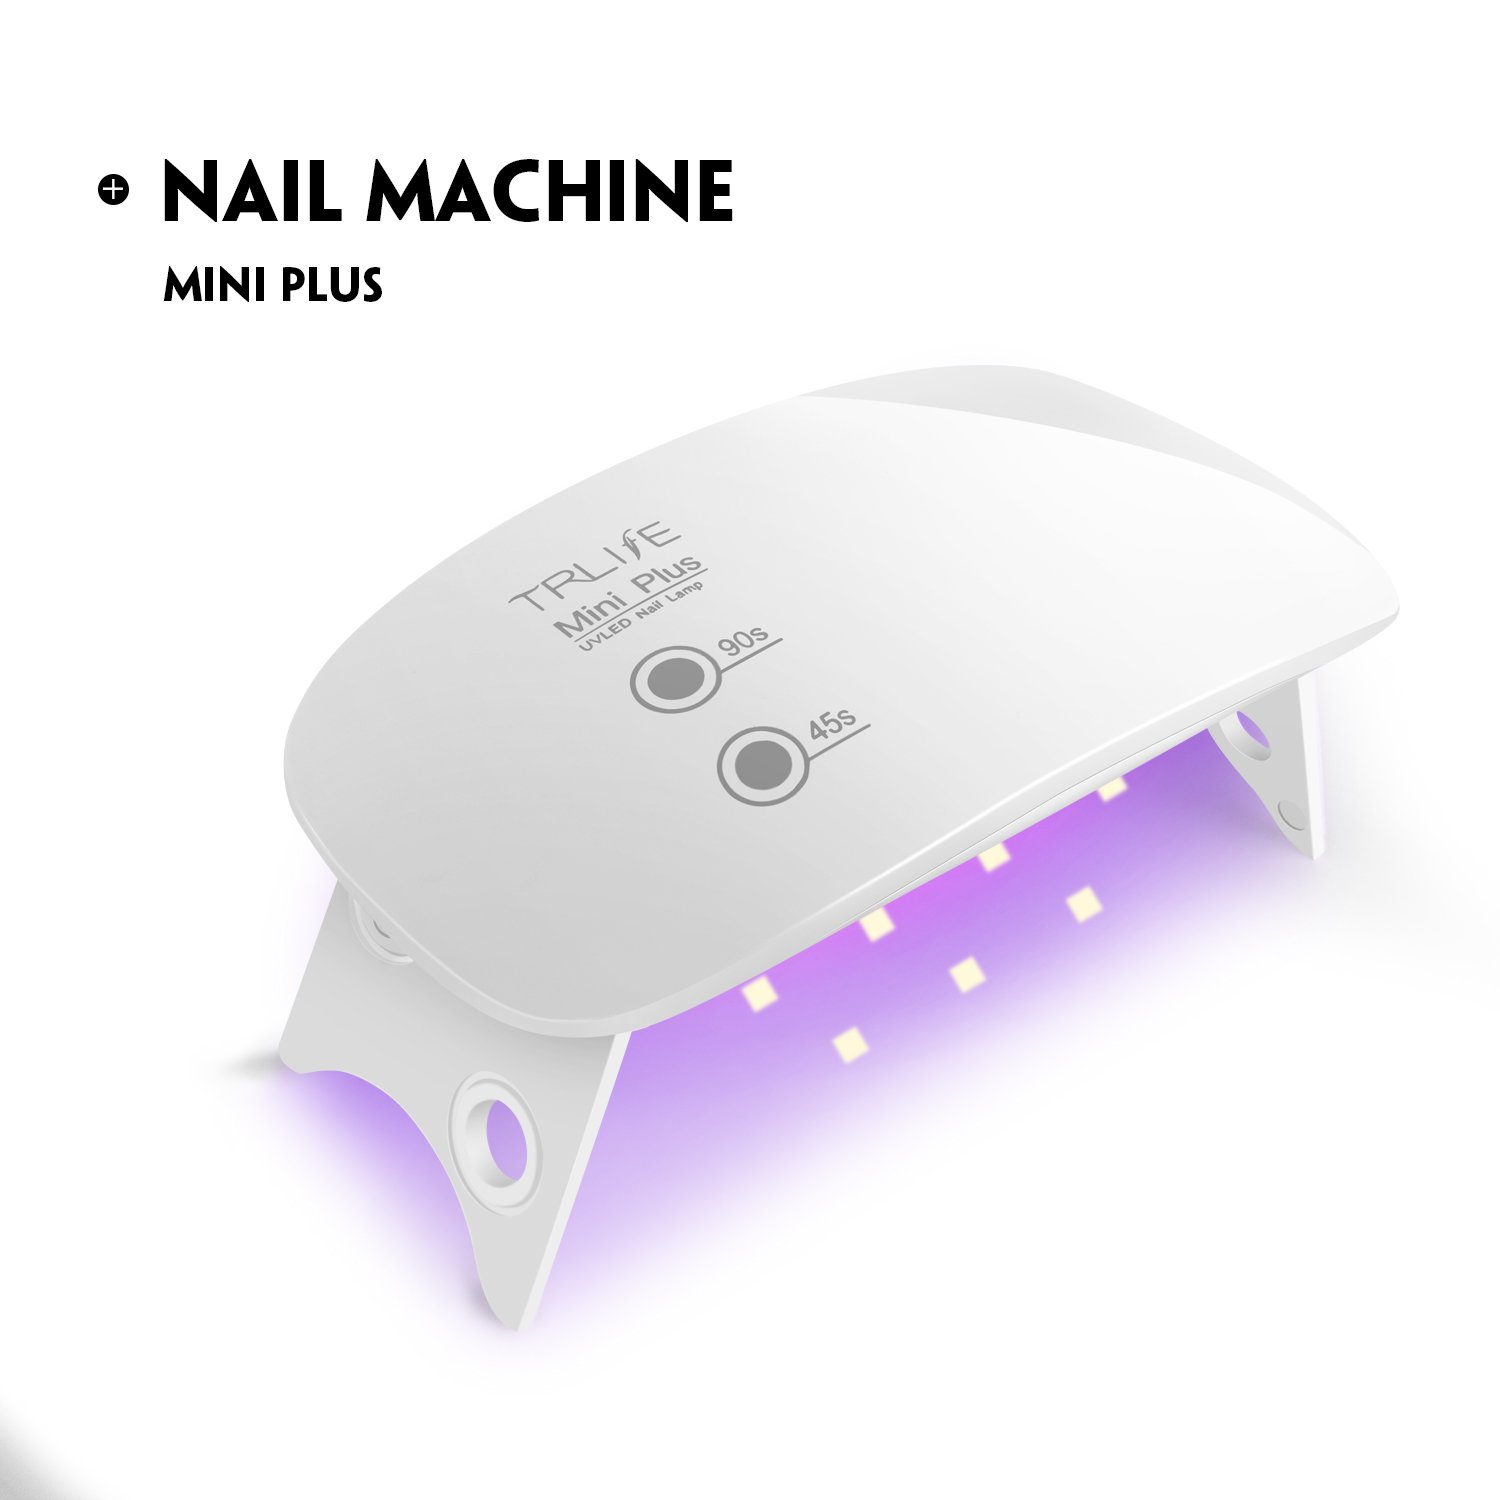 LED UV Nail Lamp Usb 5W Mini Nail Dryer Curing Gel Based Polishes Professionally with 2 Timer Settings 45s/90s White